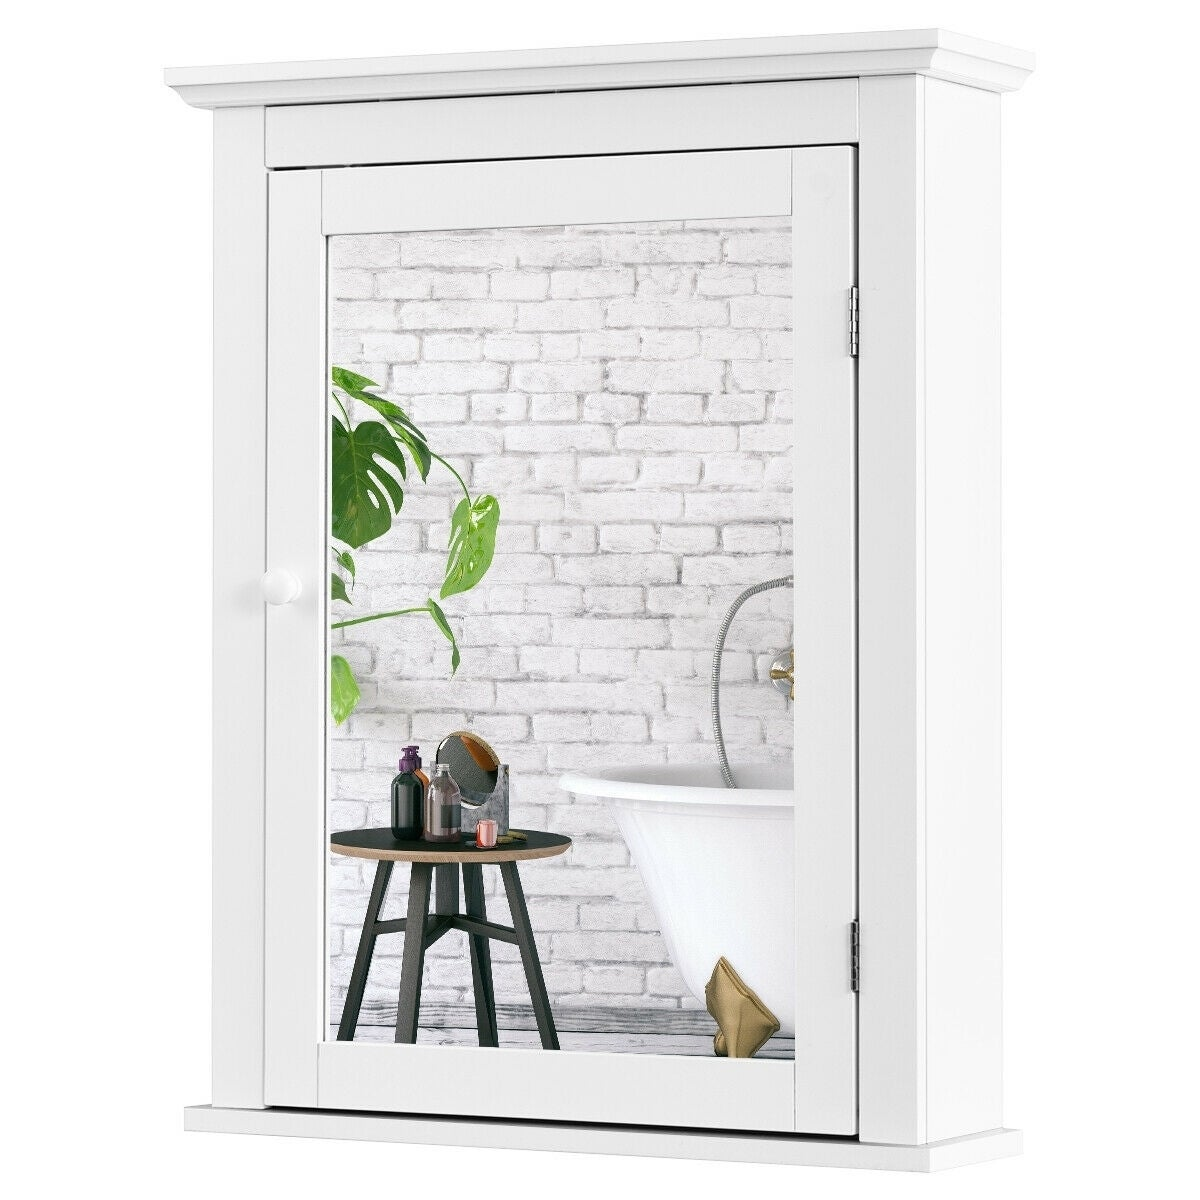 Bathroom Mirror Cabinet Wall Mounted Adjustable Shelf Medicine Storage White Overstock 30099747